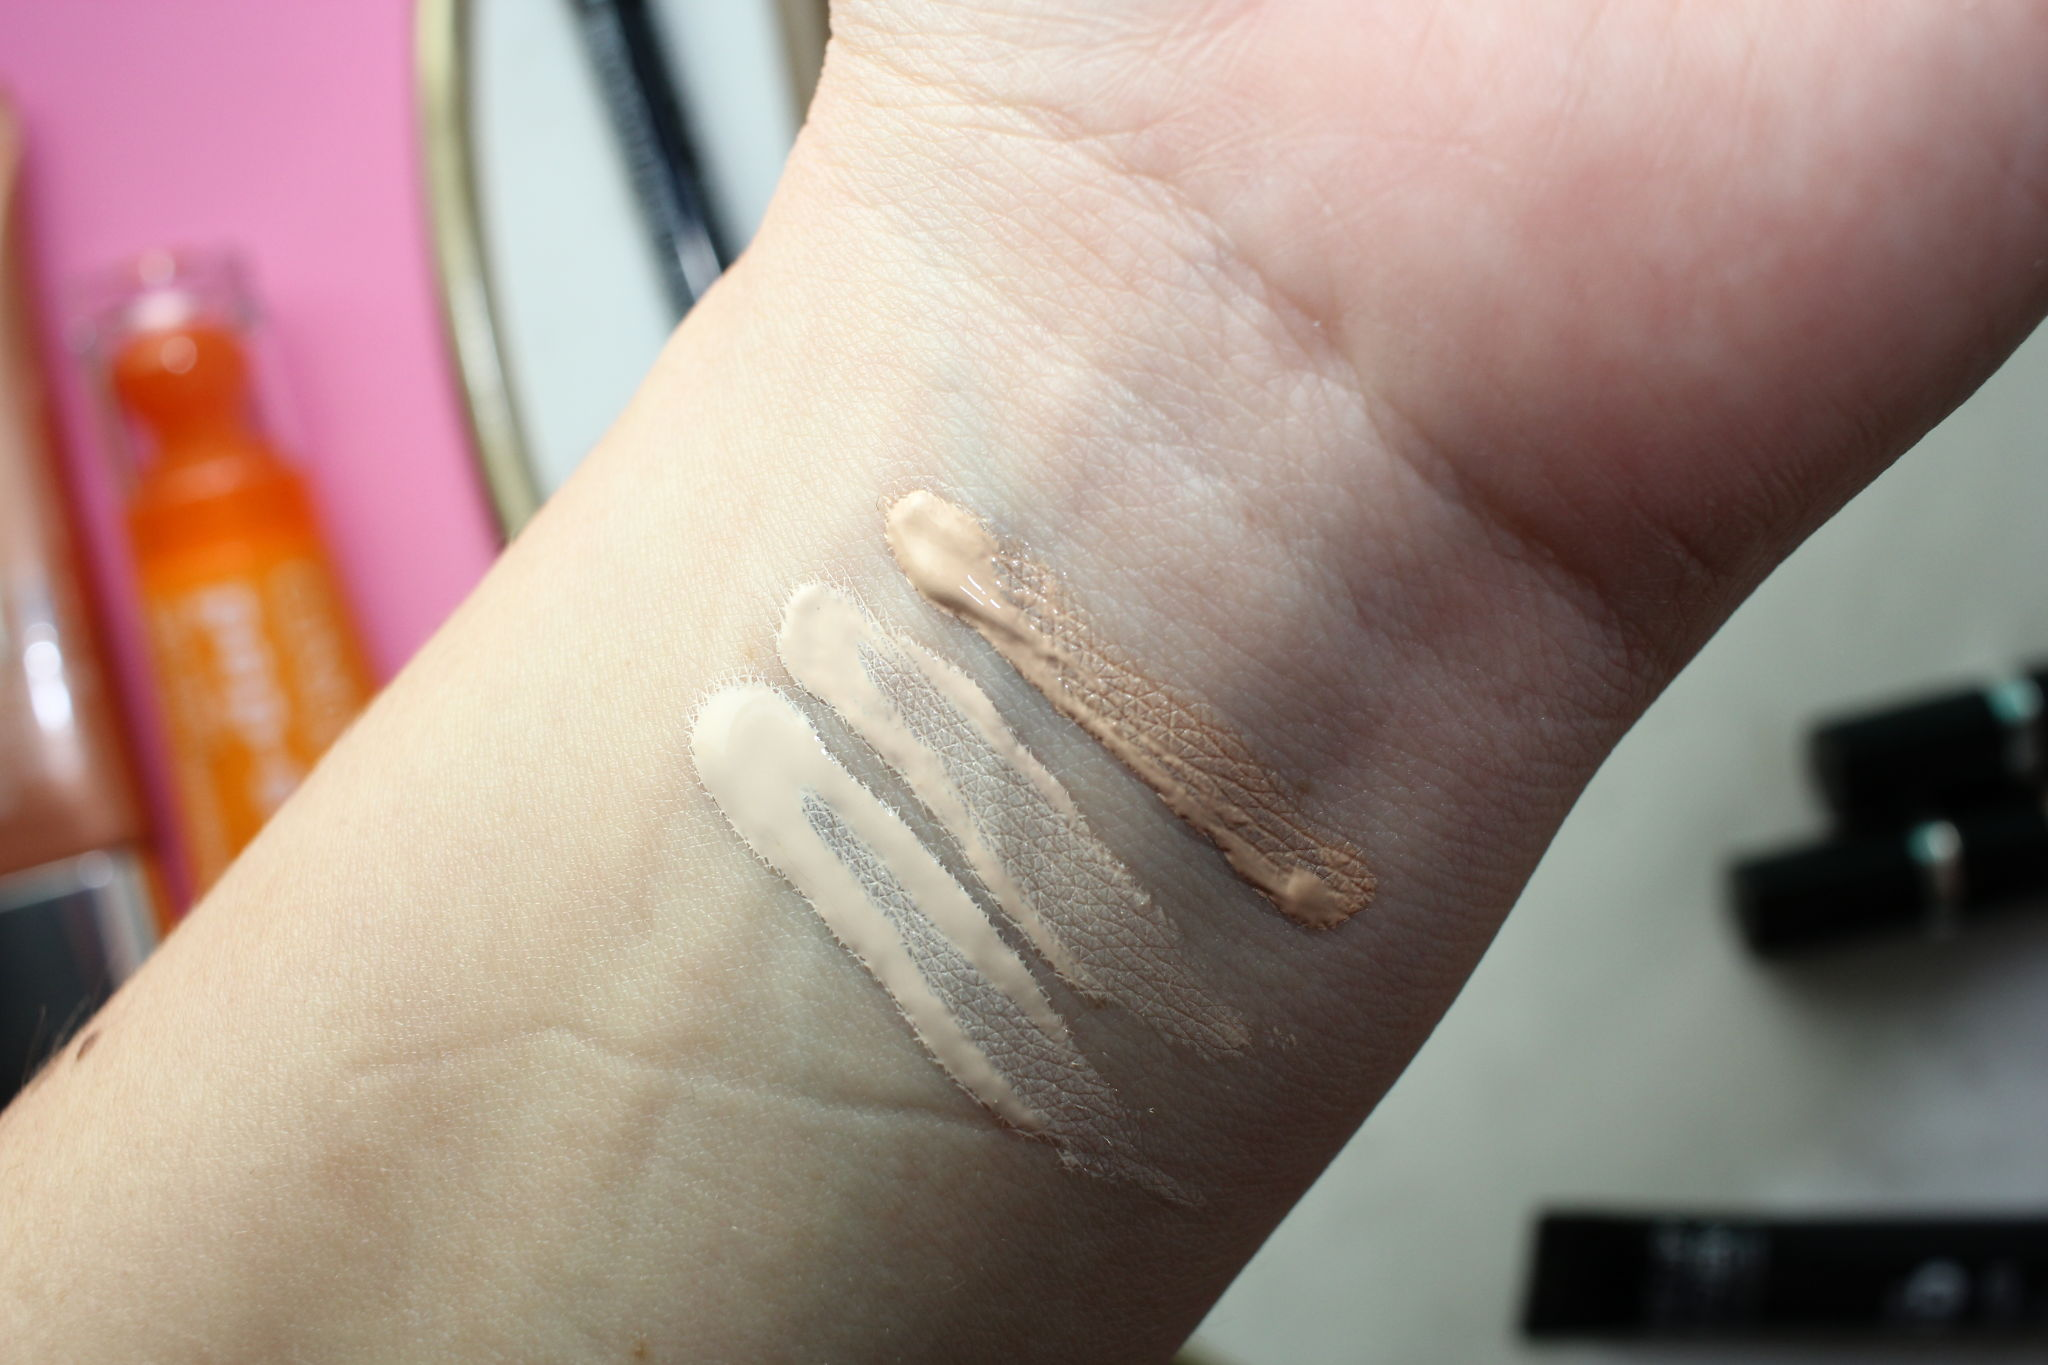 MUFE Ultra HD Concealer in Y21, R20 and R30